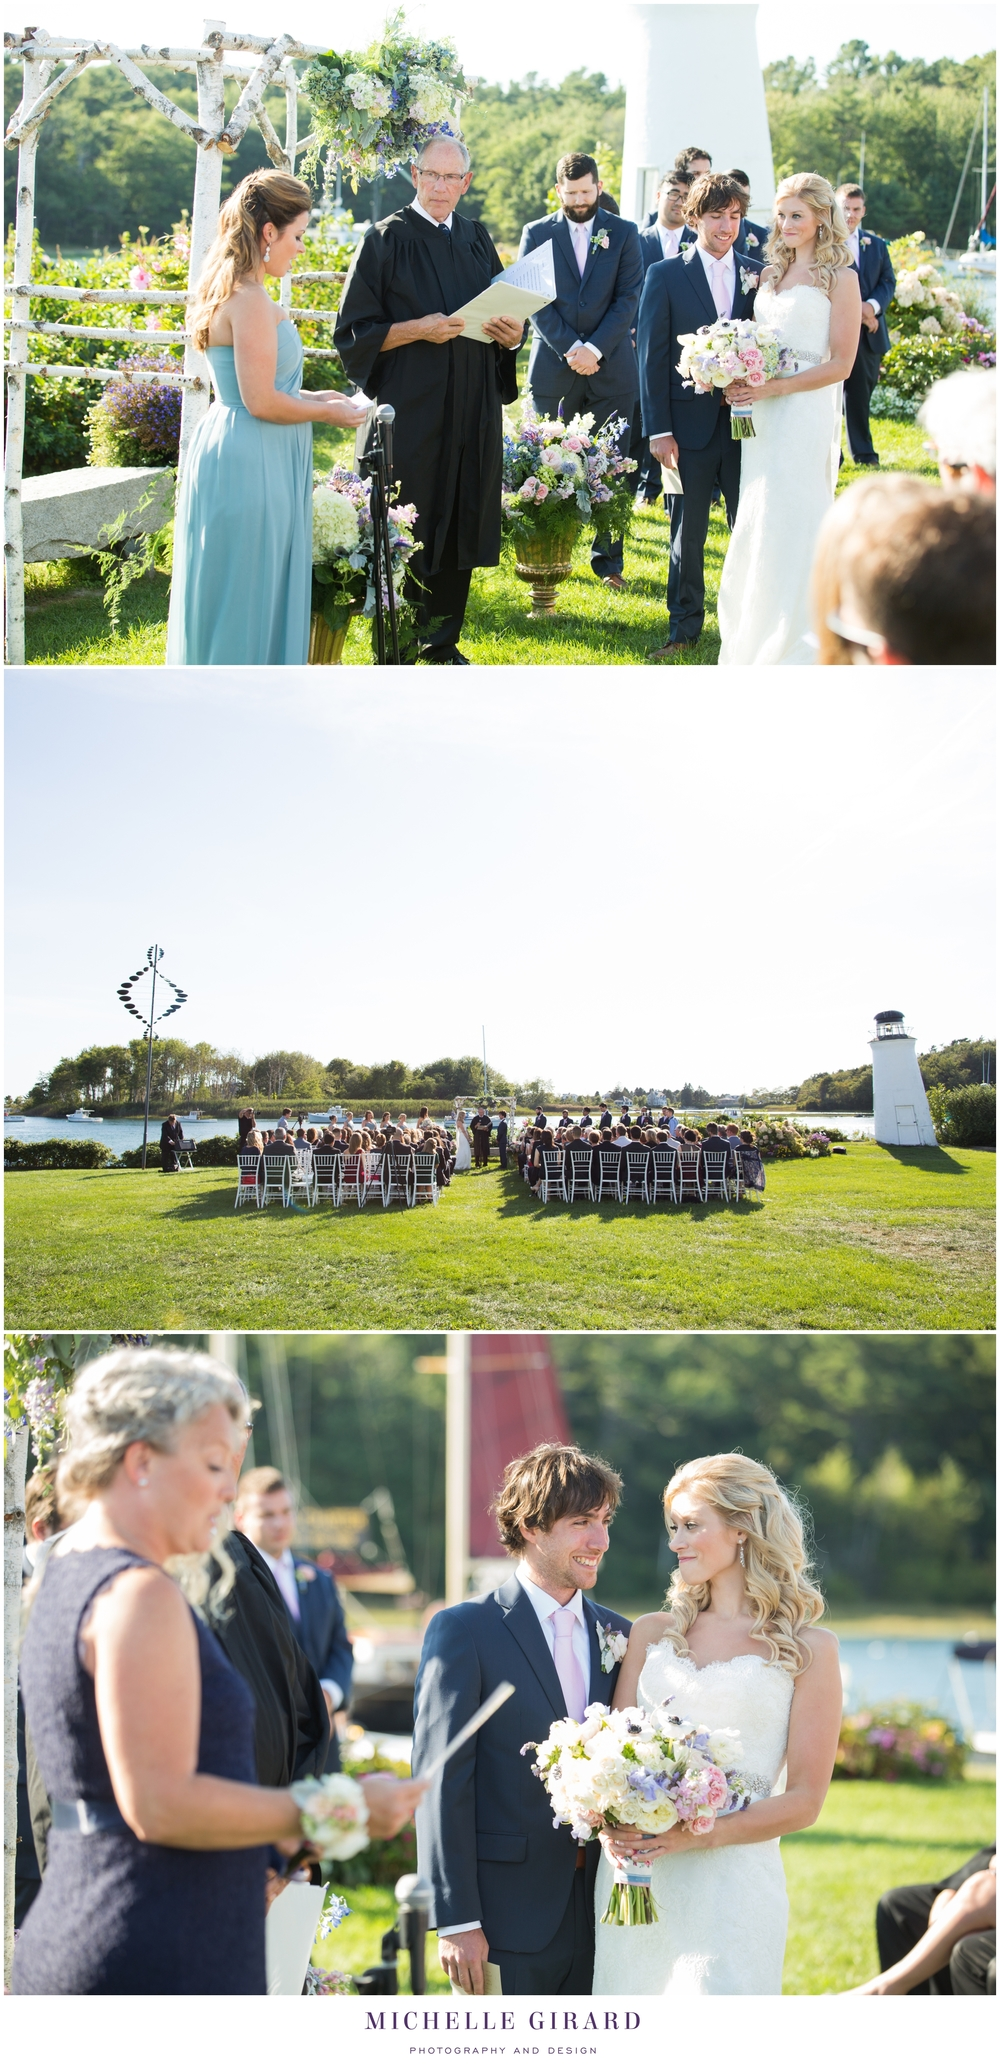 KennebunkportMaineWedding_NonantumResort_MichelleGirardPhotography27.jpg